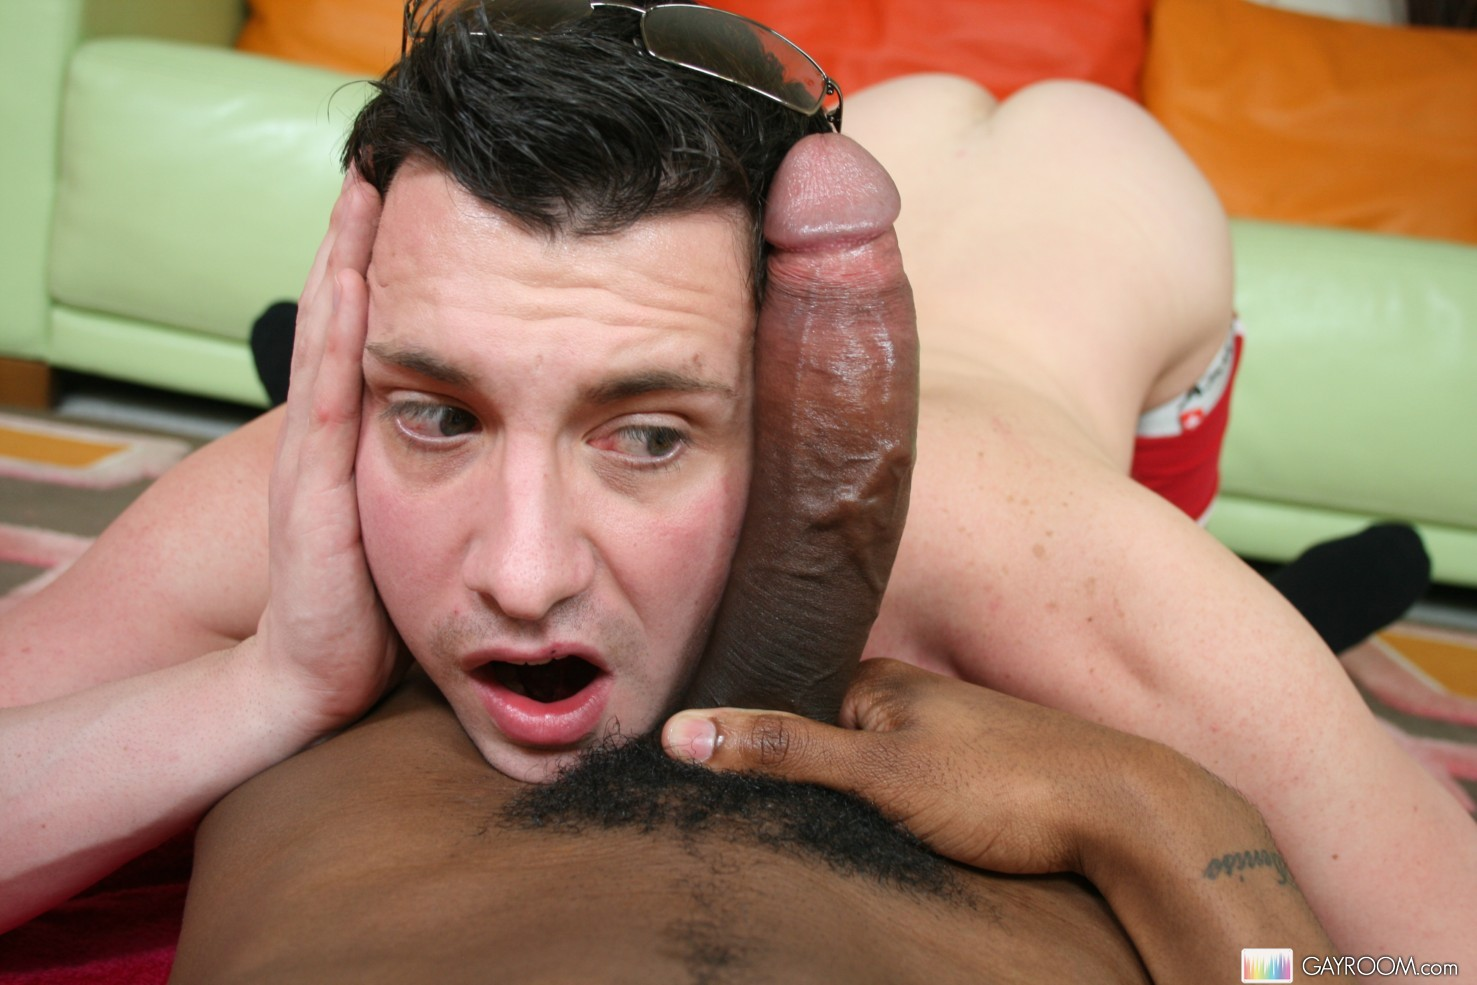 silver daddy gay footjob tumblr